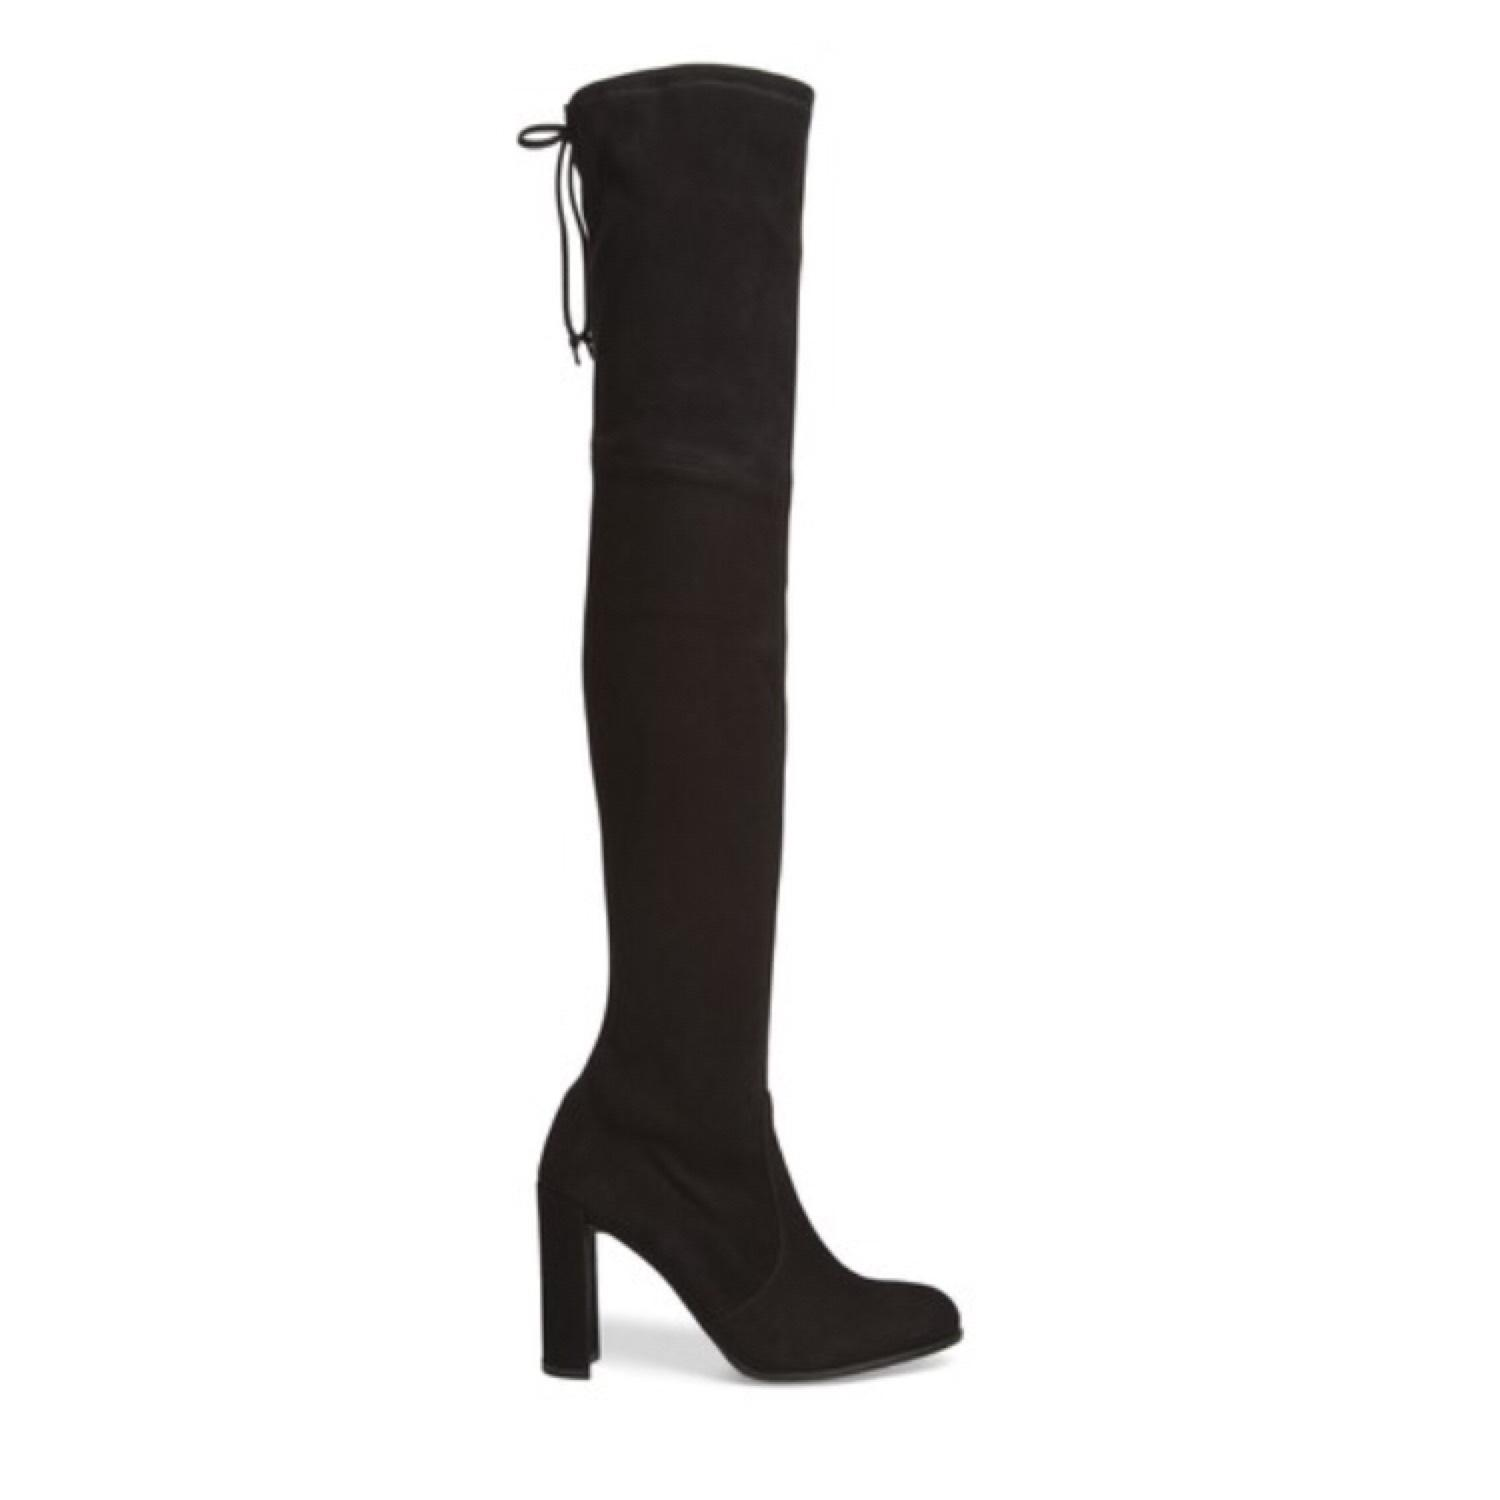 ddc85f0035c4c Stuart Weitzman Black Hiline Over The Knee Size 6 Regular (M, B ...